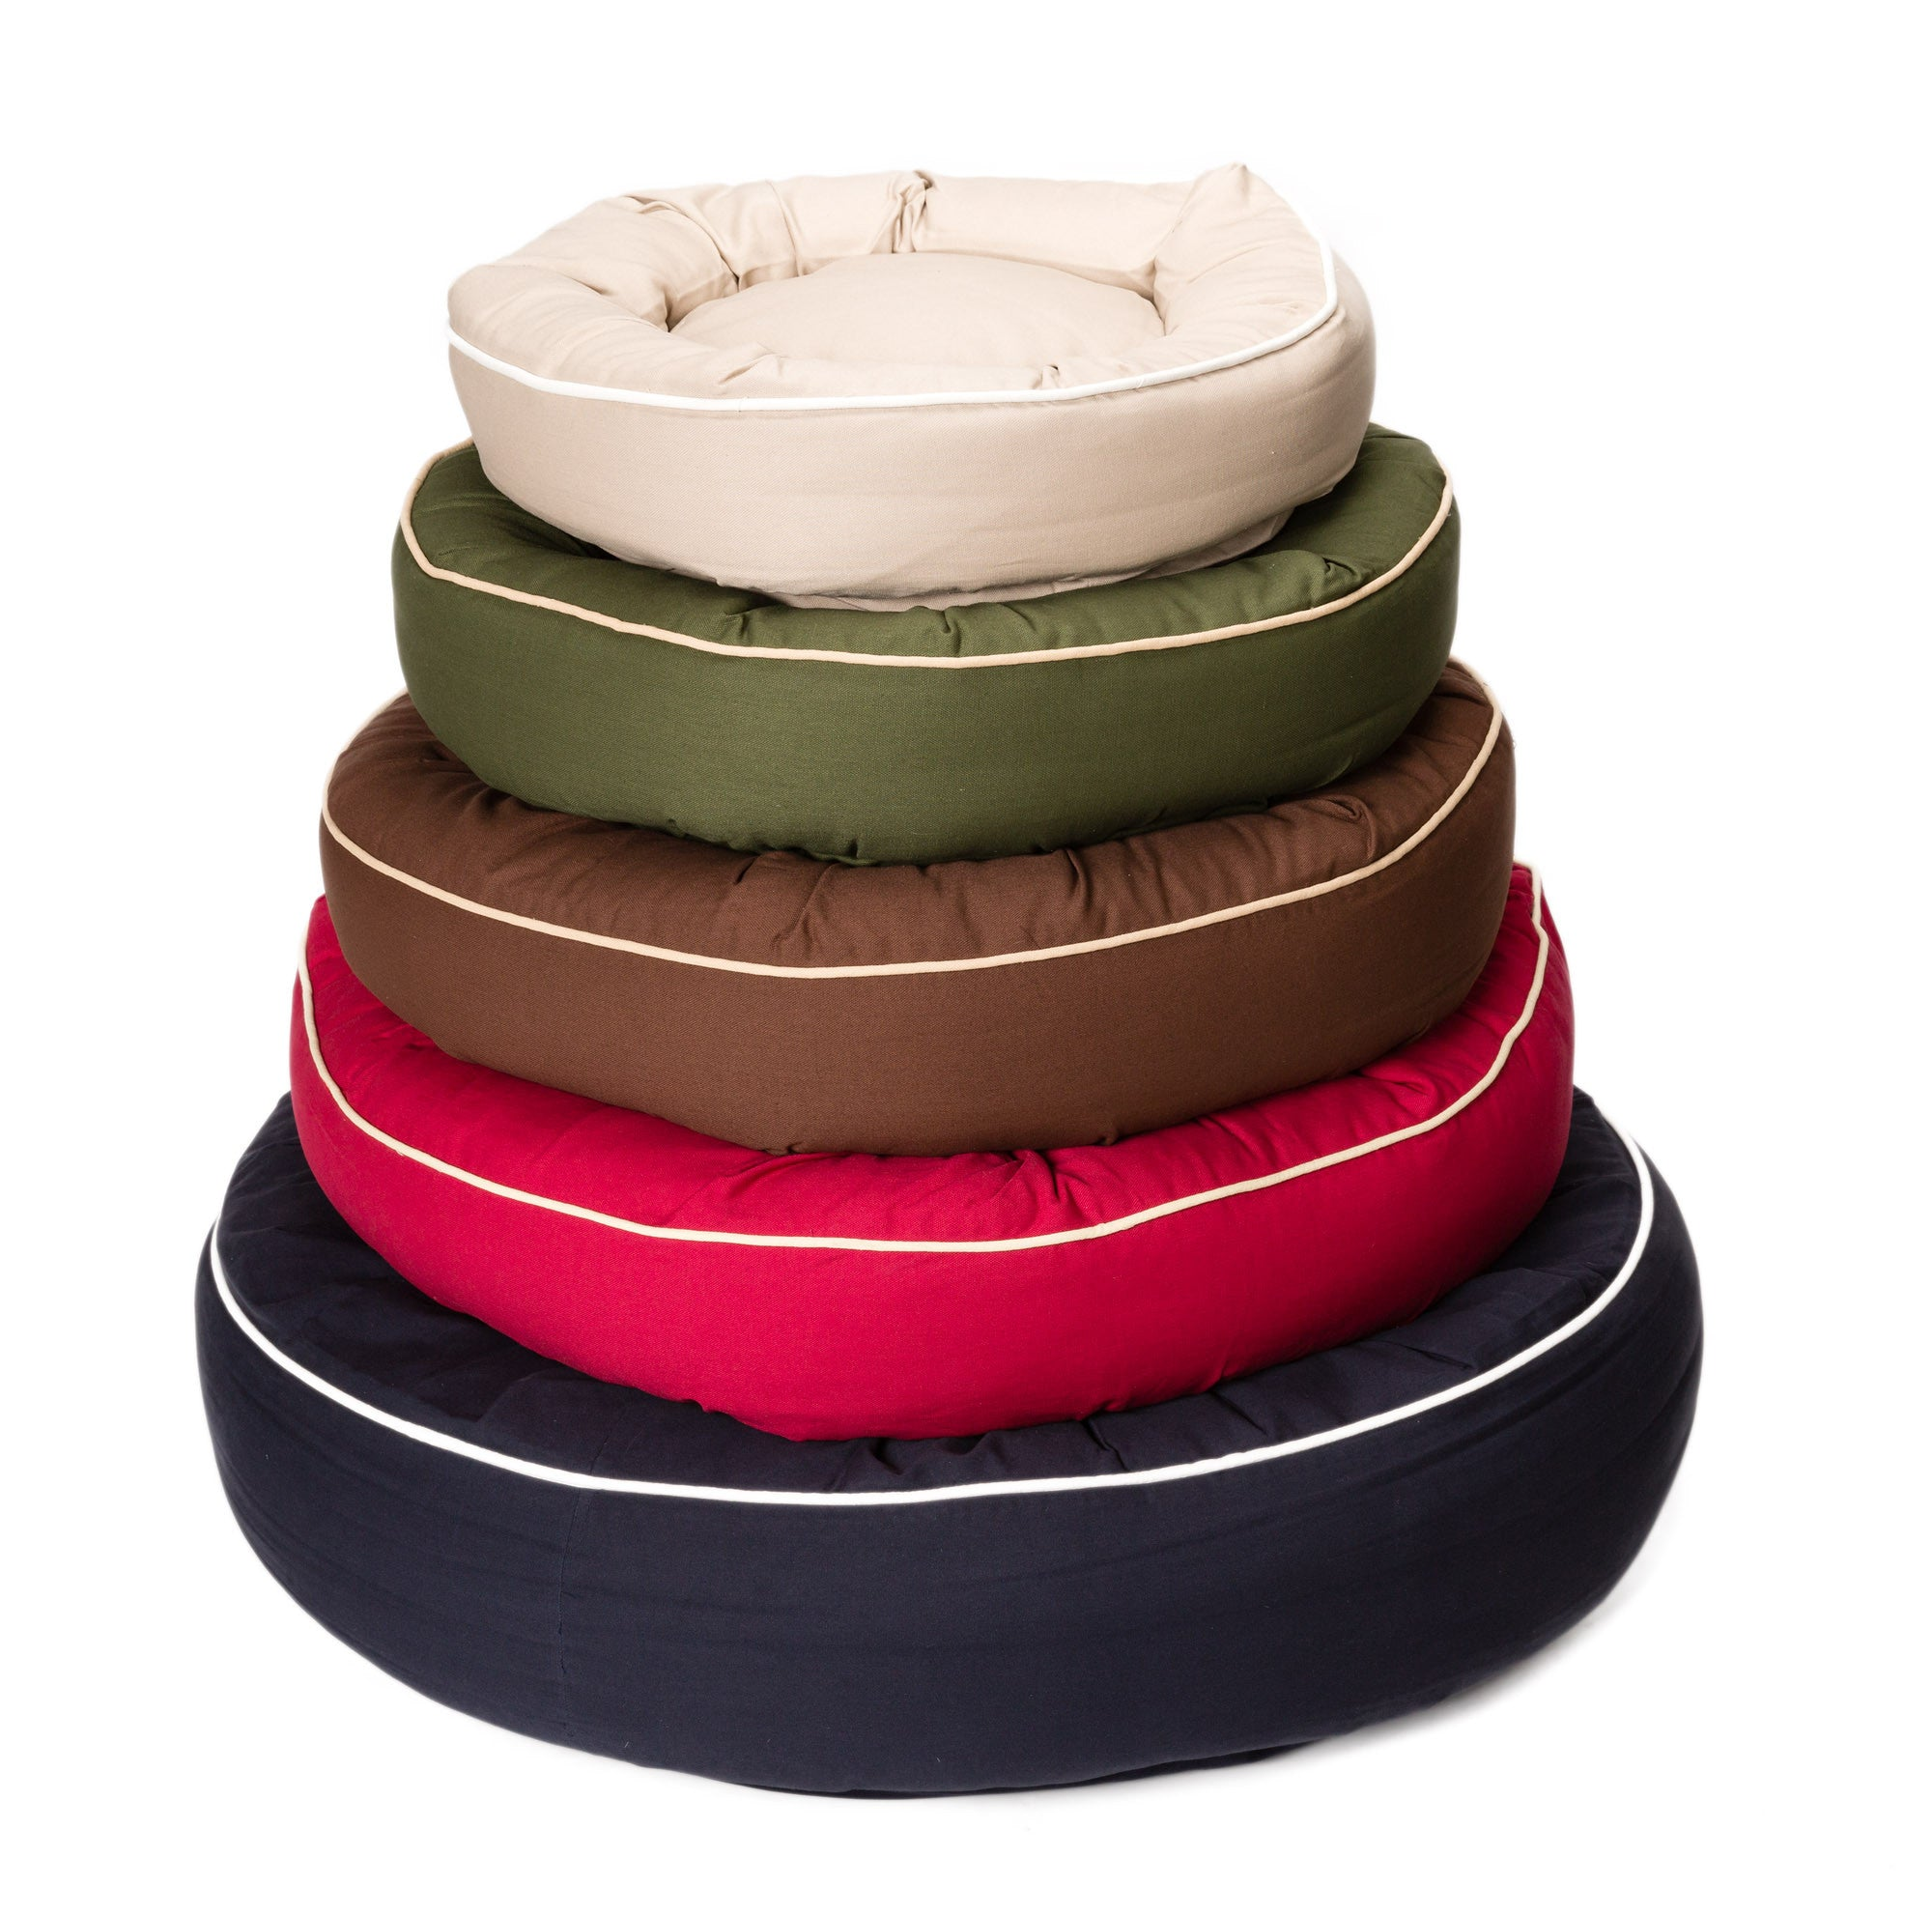 Canine Styles - Cotton Canvas Beds - Solid Colors w/Off White Piping - Dog Beds - 5 Color Options